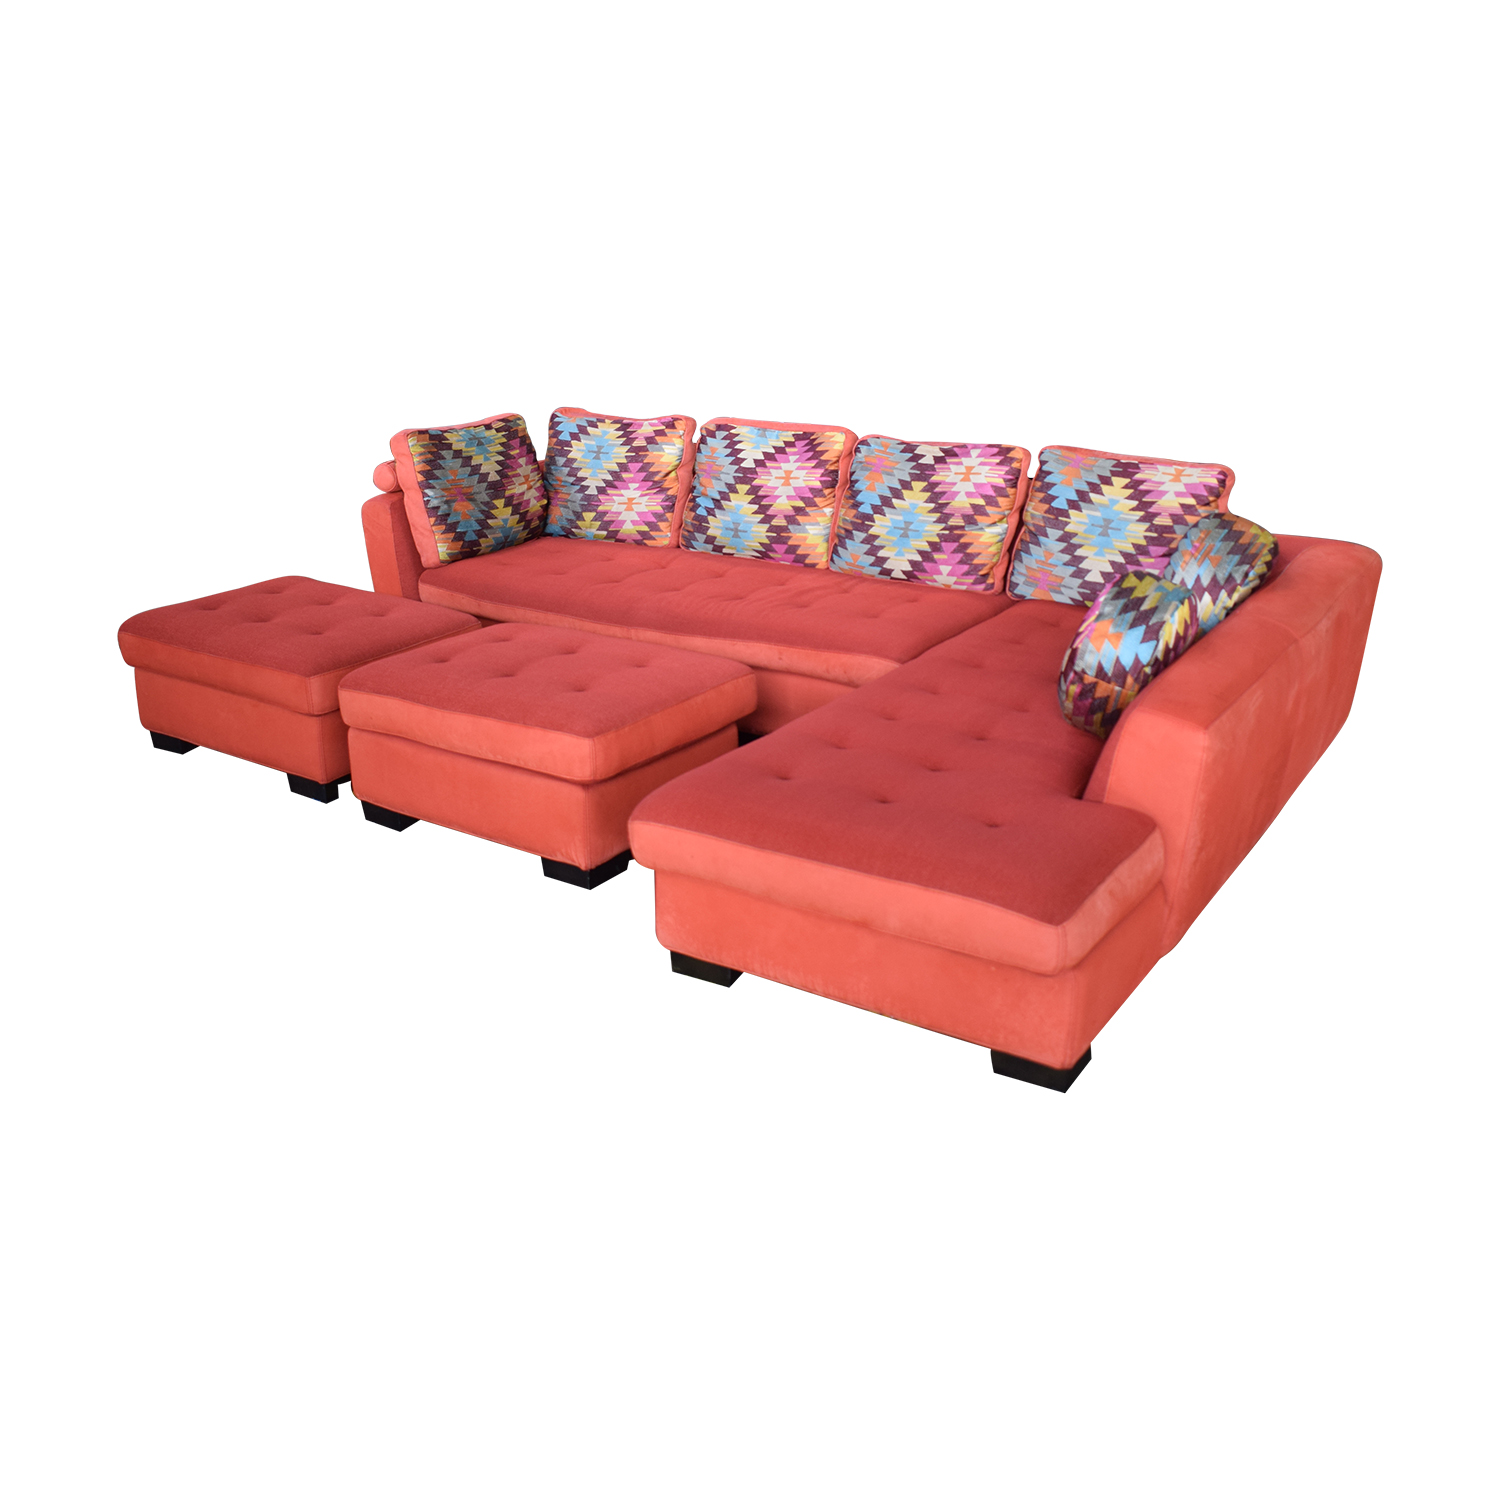 83 Off Maurice Villency Sofa Sectional With Ottomans Sofas